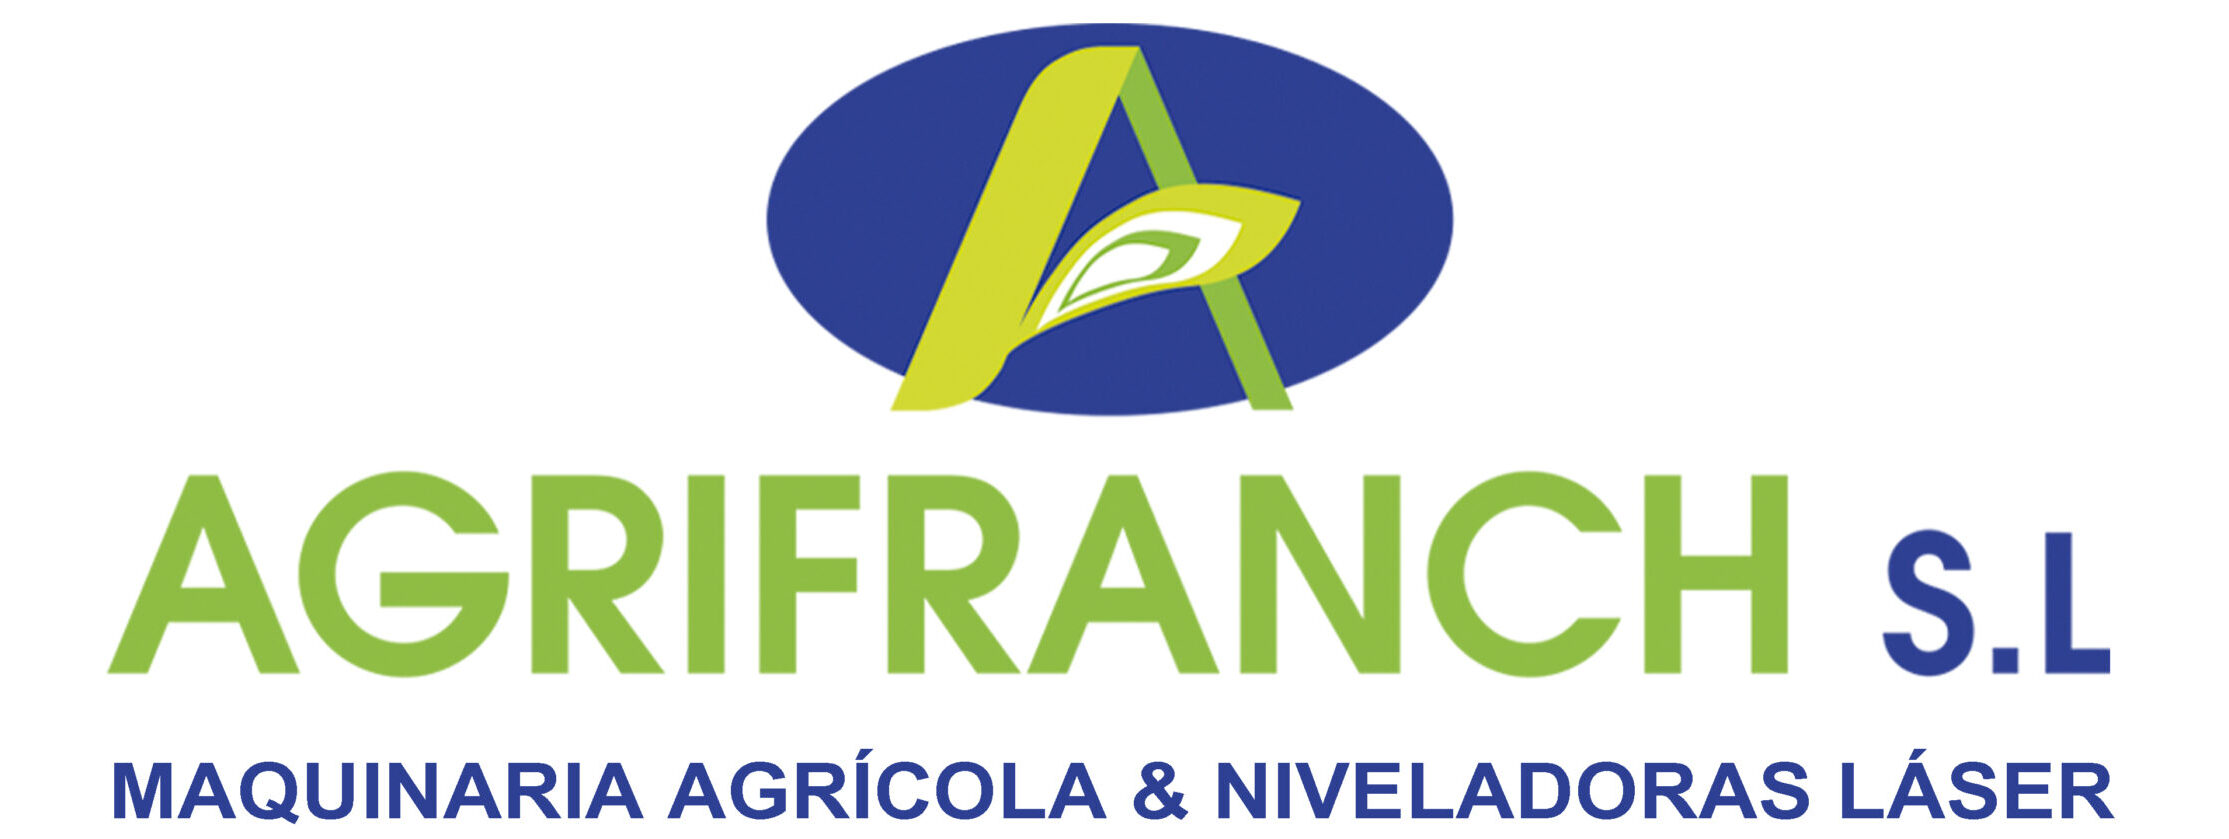 Agrifranch.com